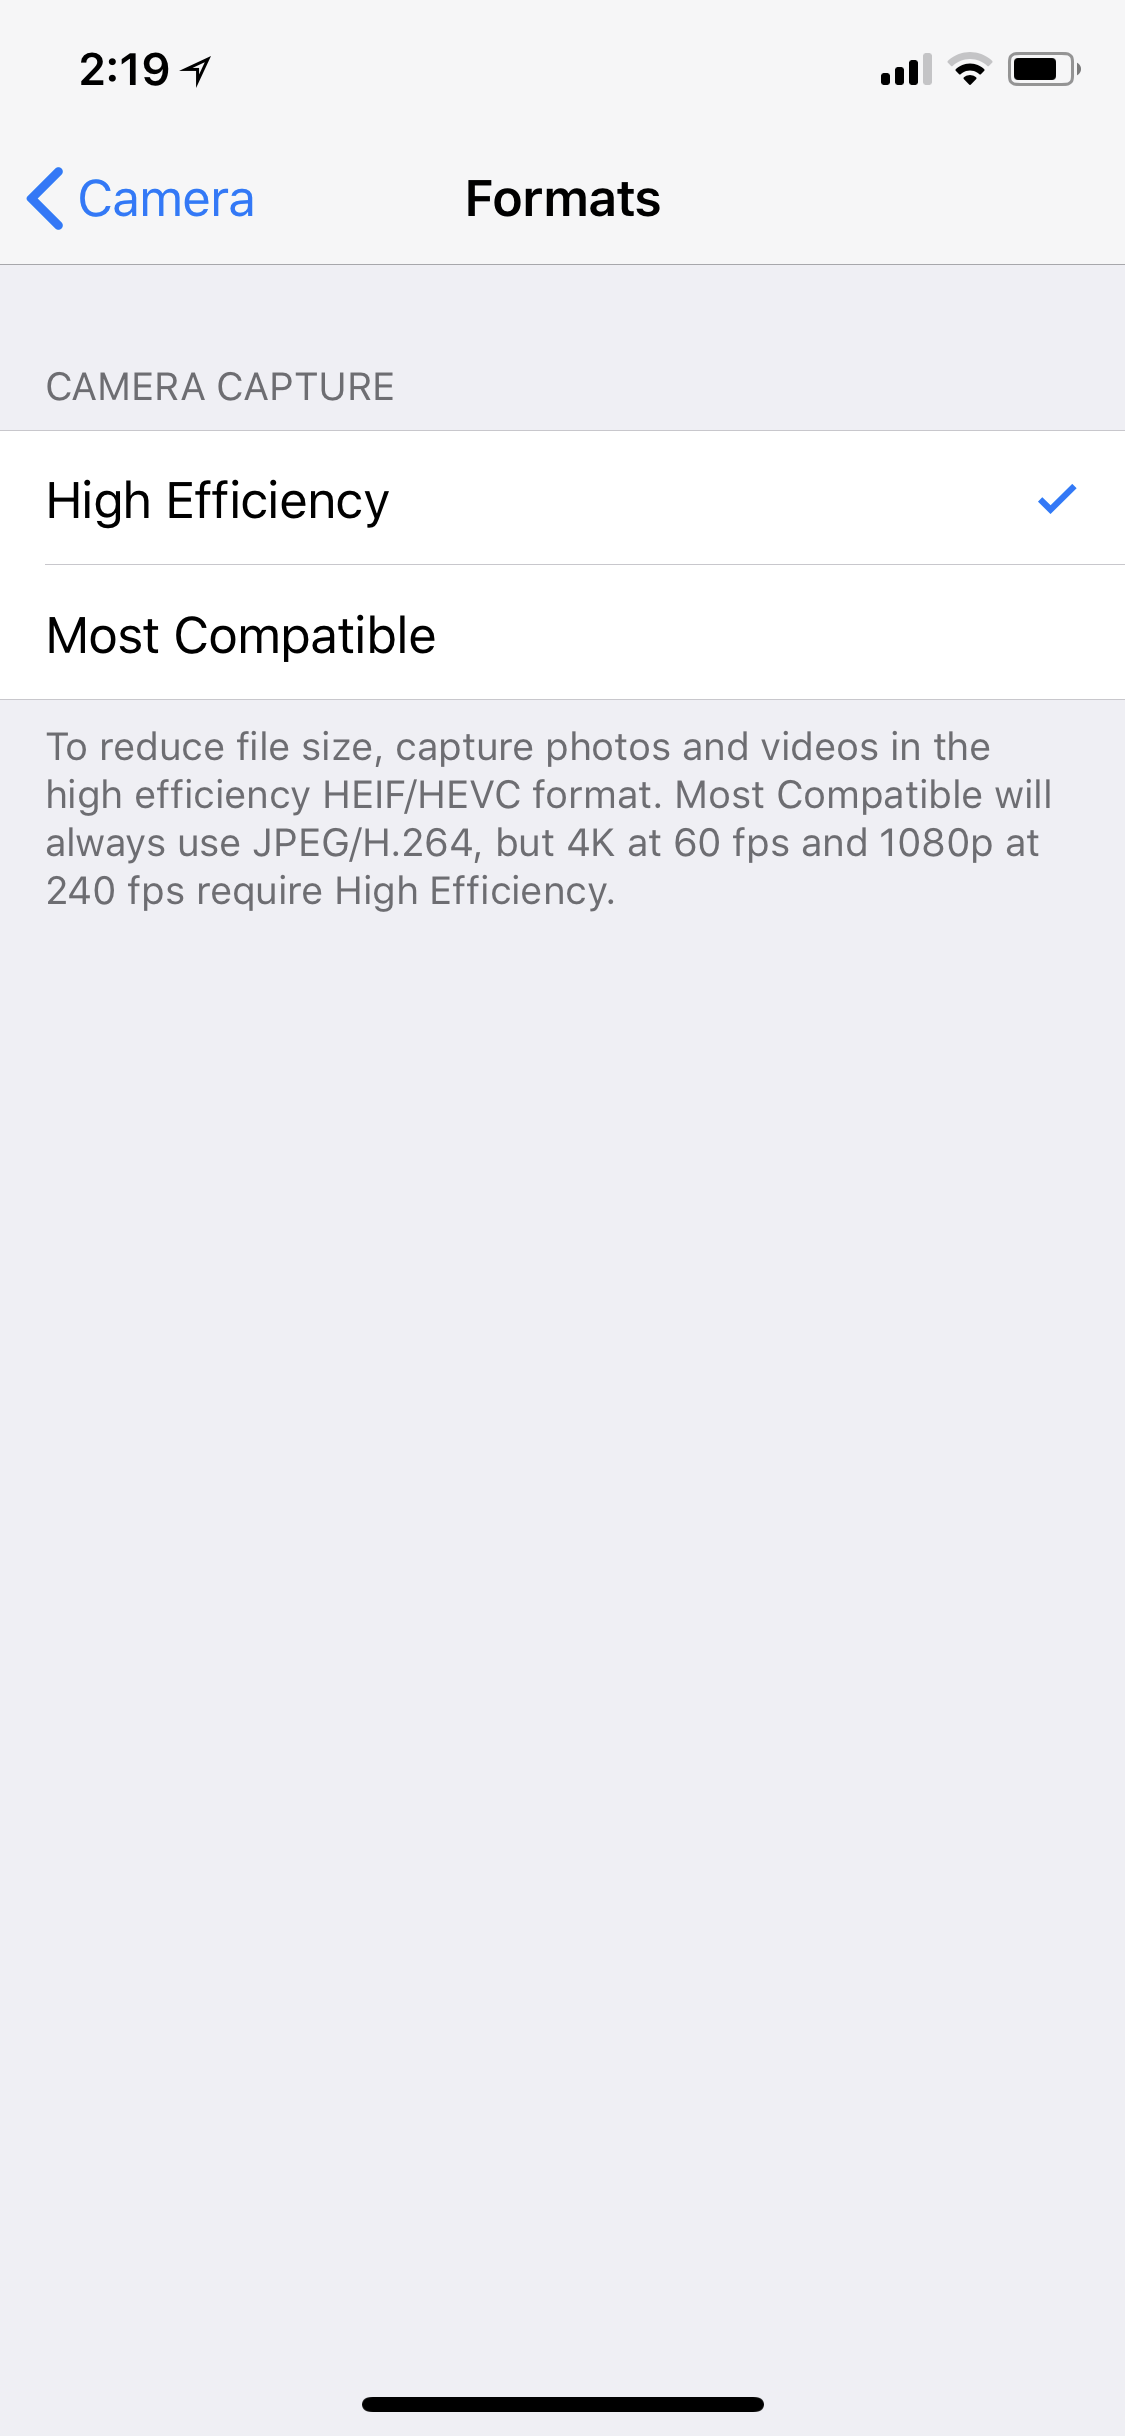 Convert Your iOS Photos and Videos for Better Compatibility